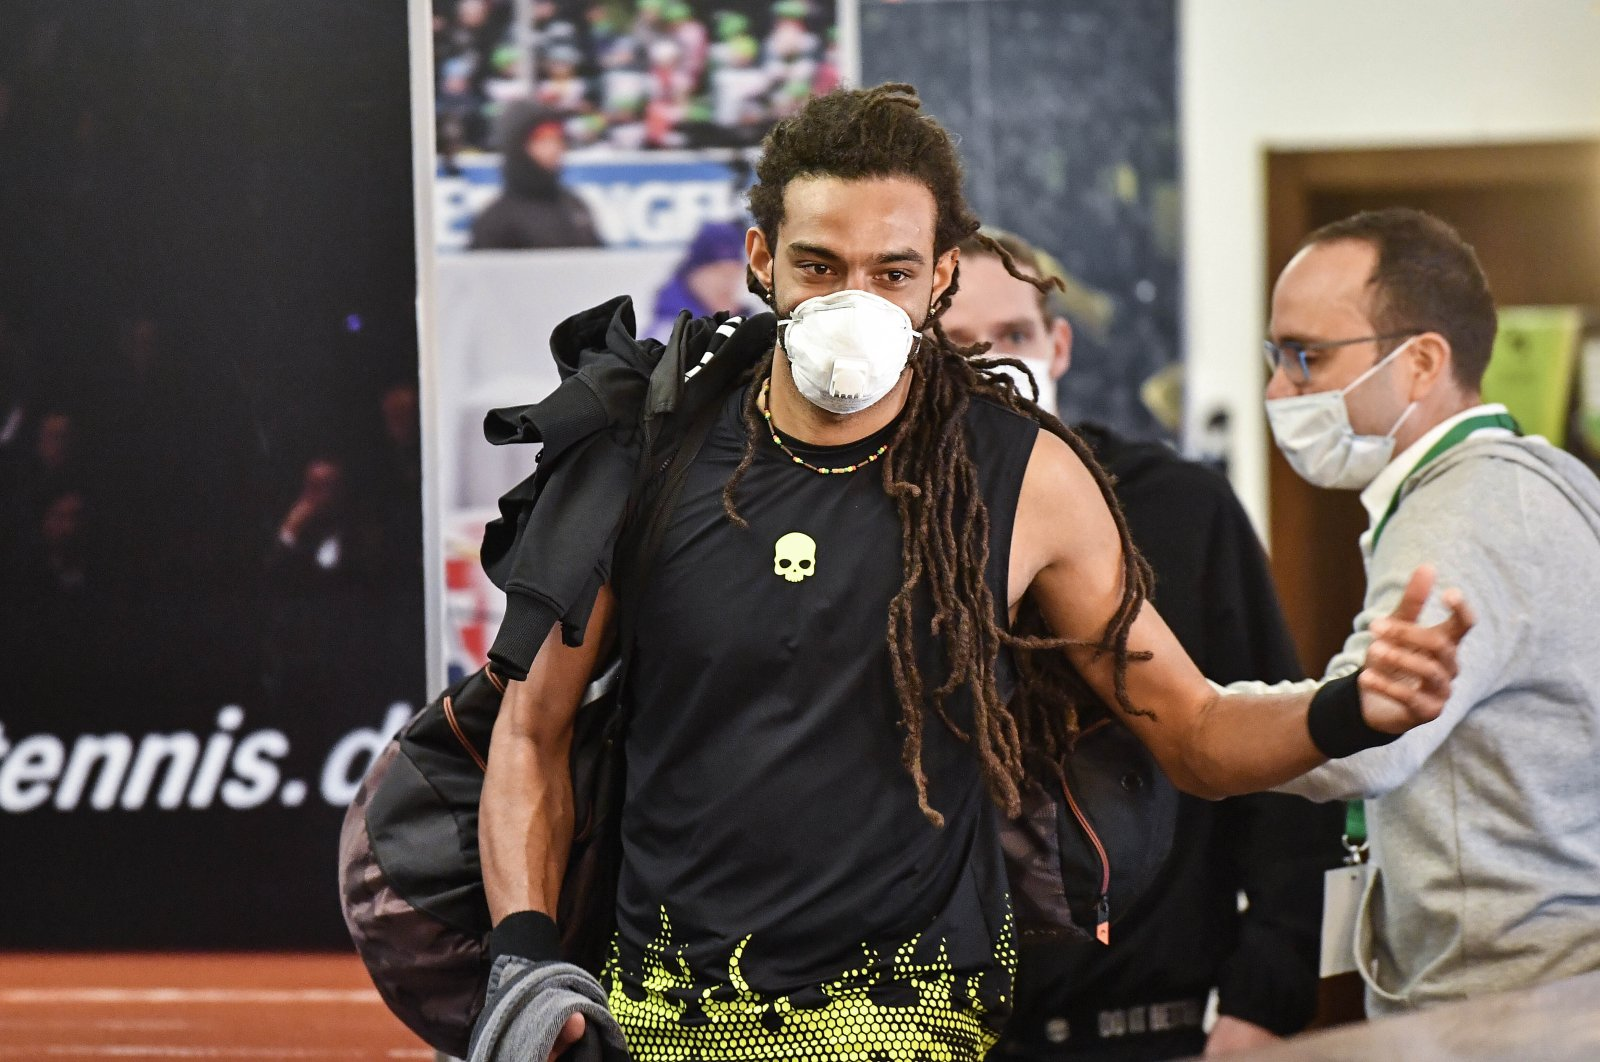 Tennis player Dustin Brown wears a face mask at a pro-tennis tournament in Hoehr-Grenzhausen, Germany, , May 1, 2020. (AP Photo)